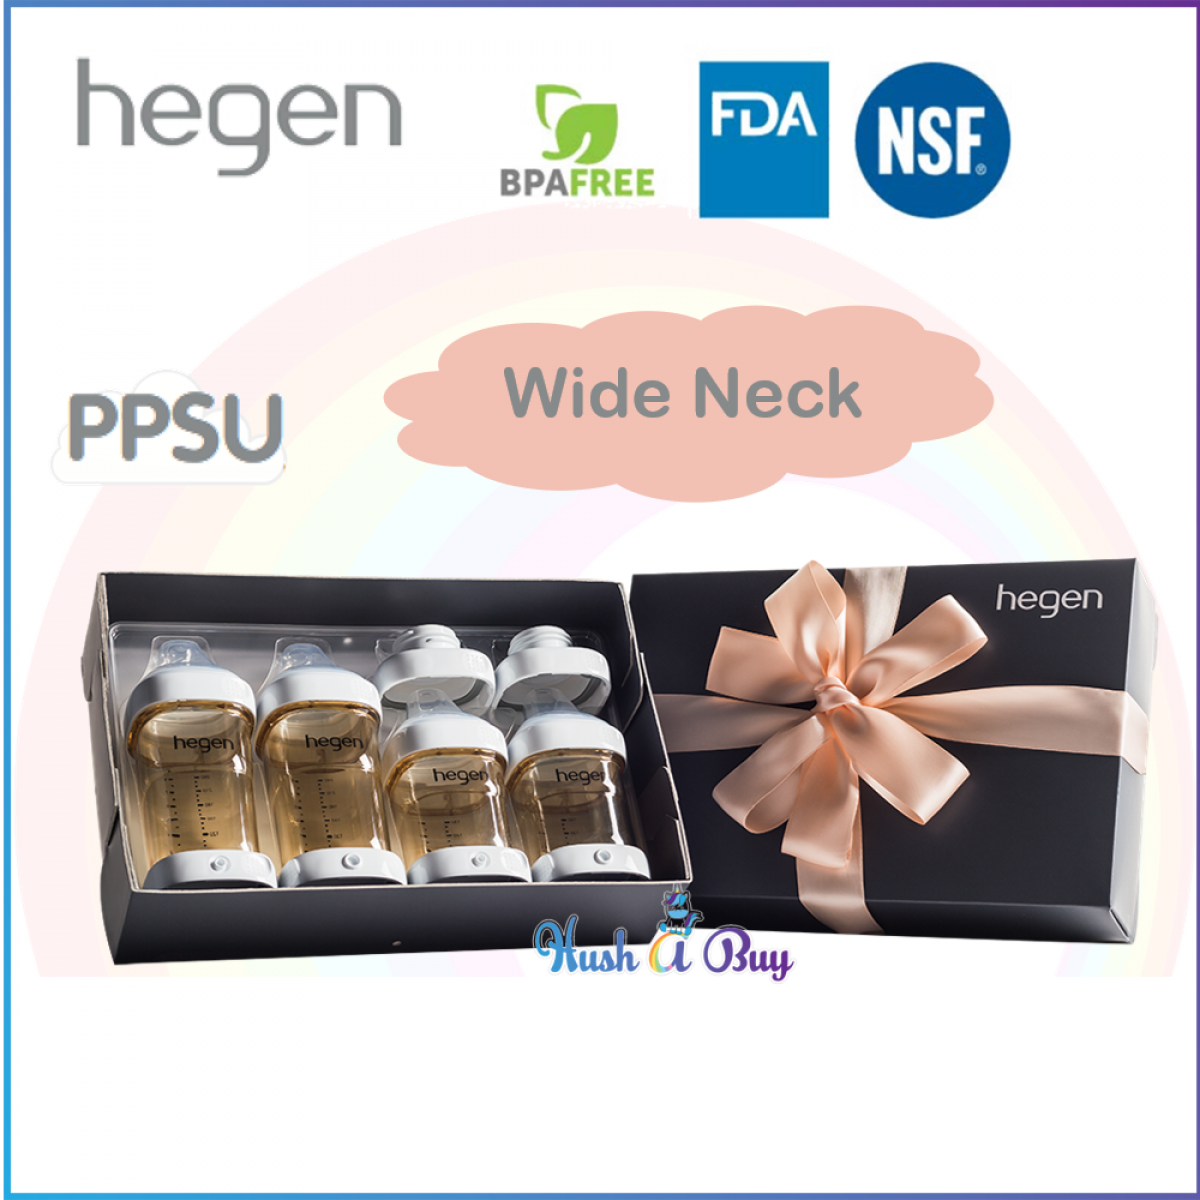 Hegen PCTO Complete Starter Kit PPSU - Standard Neck or Wide Neck